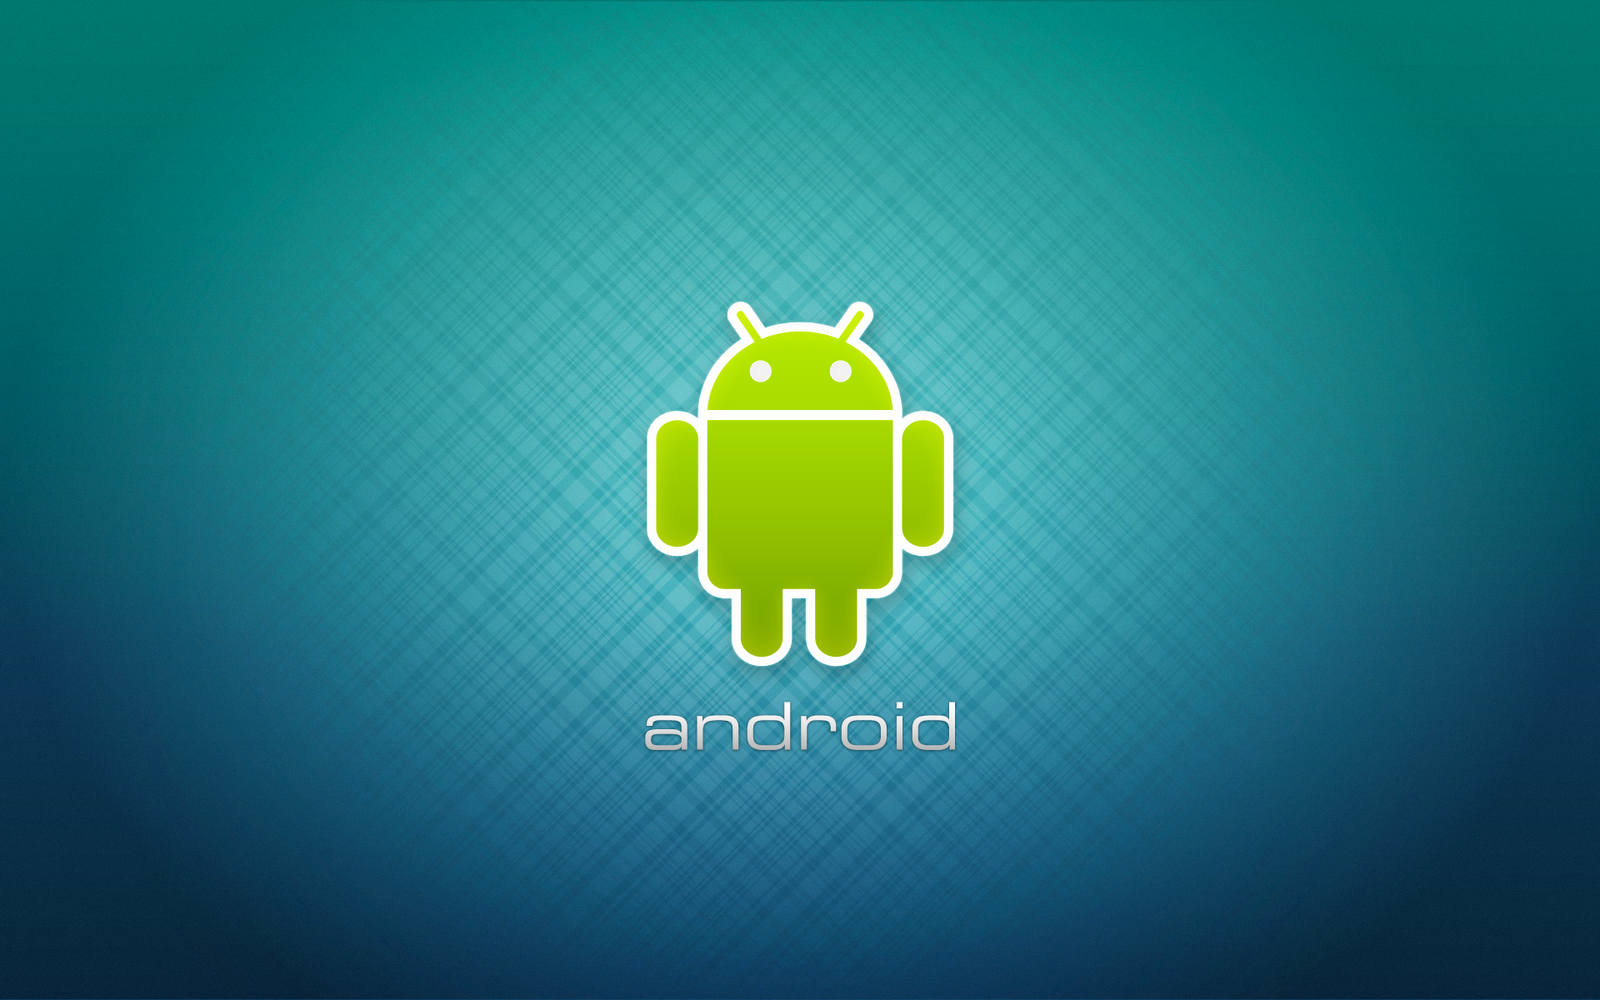 wallpaper android wallpapers 1600x1000